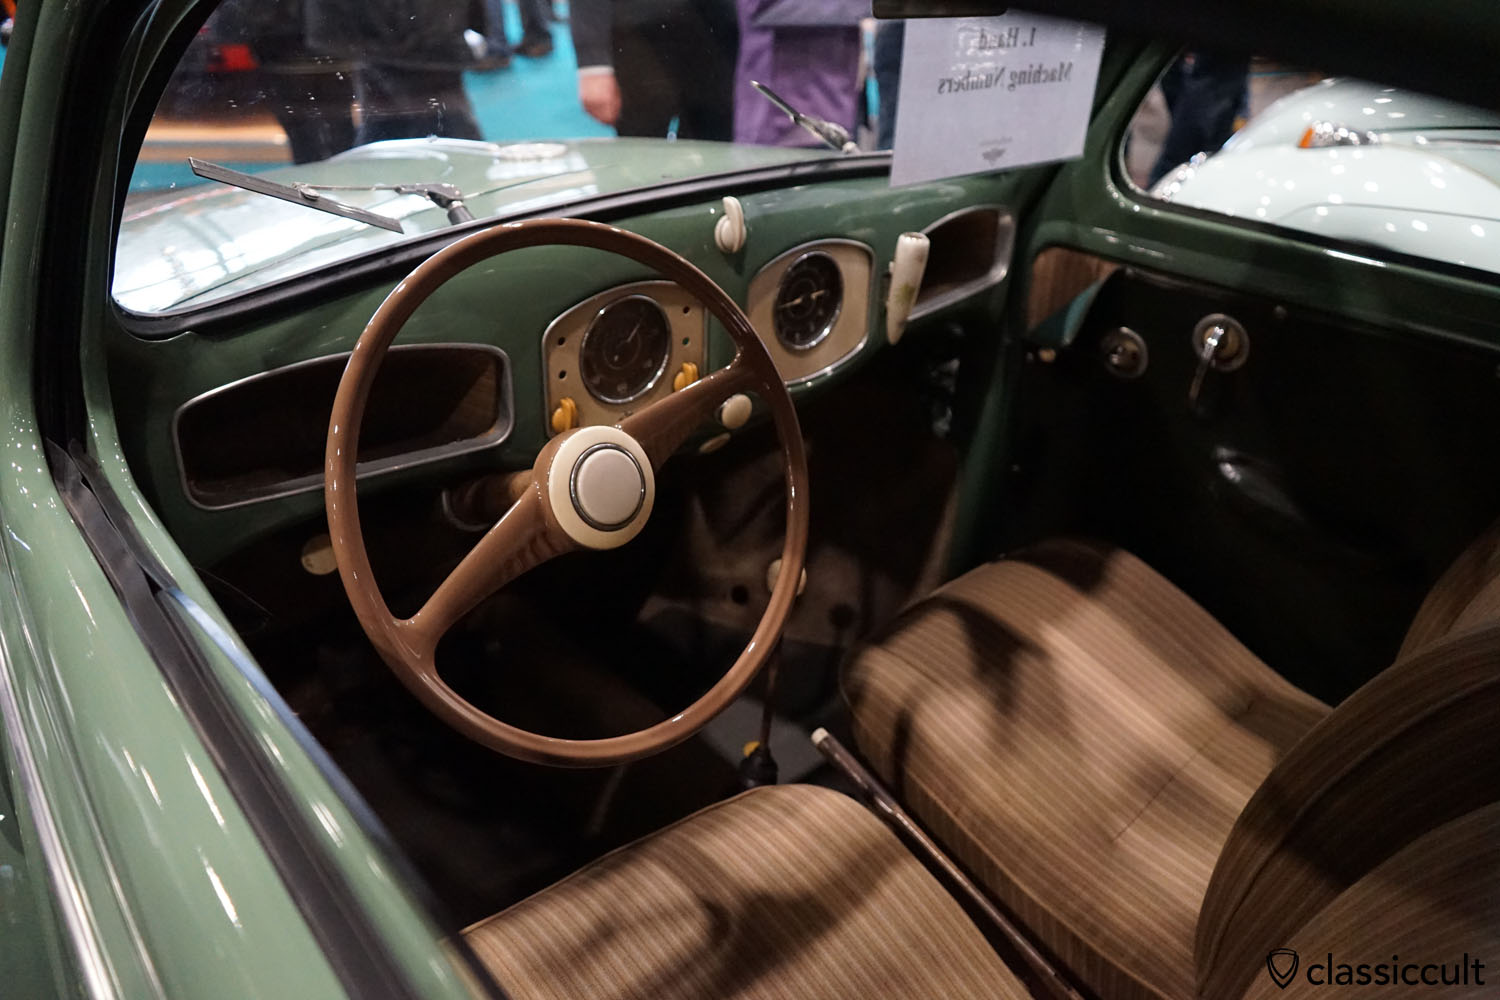 1951 VW Split Beetle dashboard, original and untouched